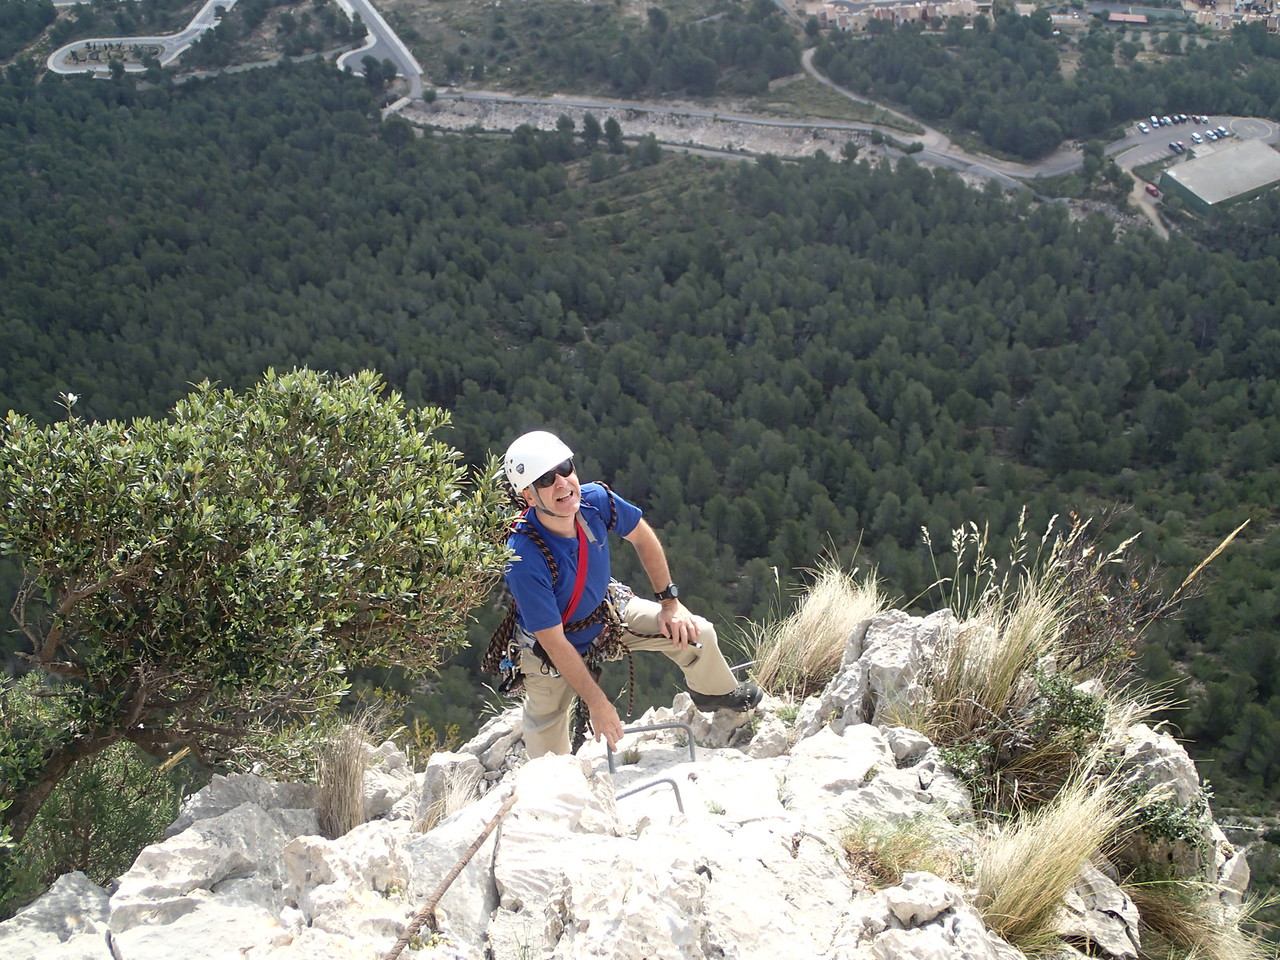 Graham near the finish of the Ponoch Via Ferrata